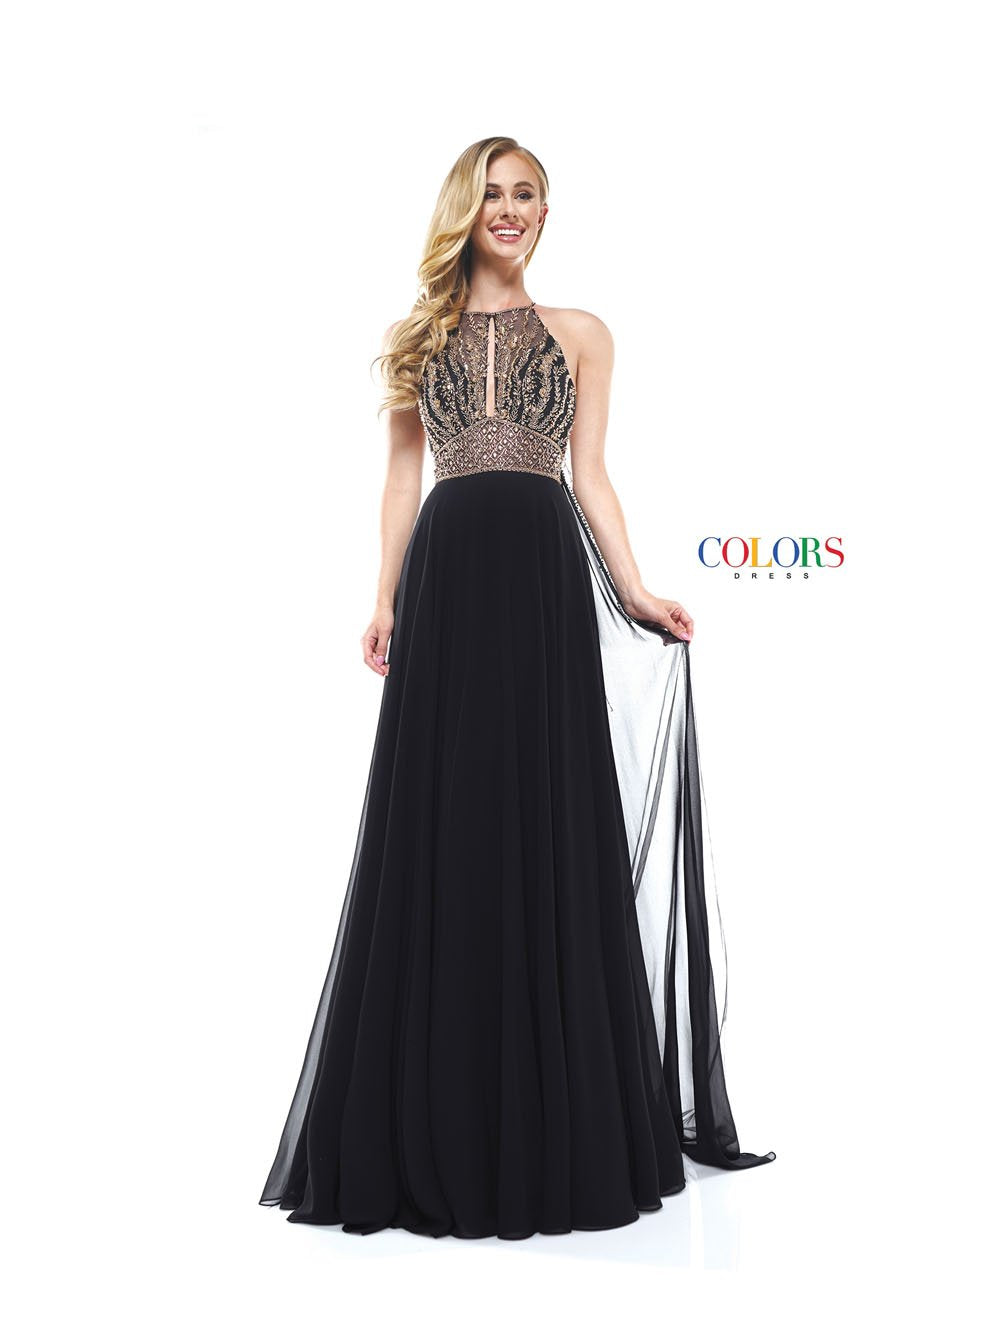 Colors Dress 2335 prom dress images.  Colors 2335 dresses are available in these colors: Black, Royal, Off White.